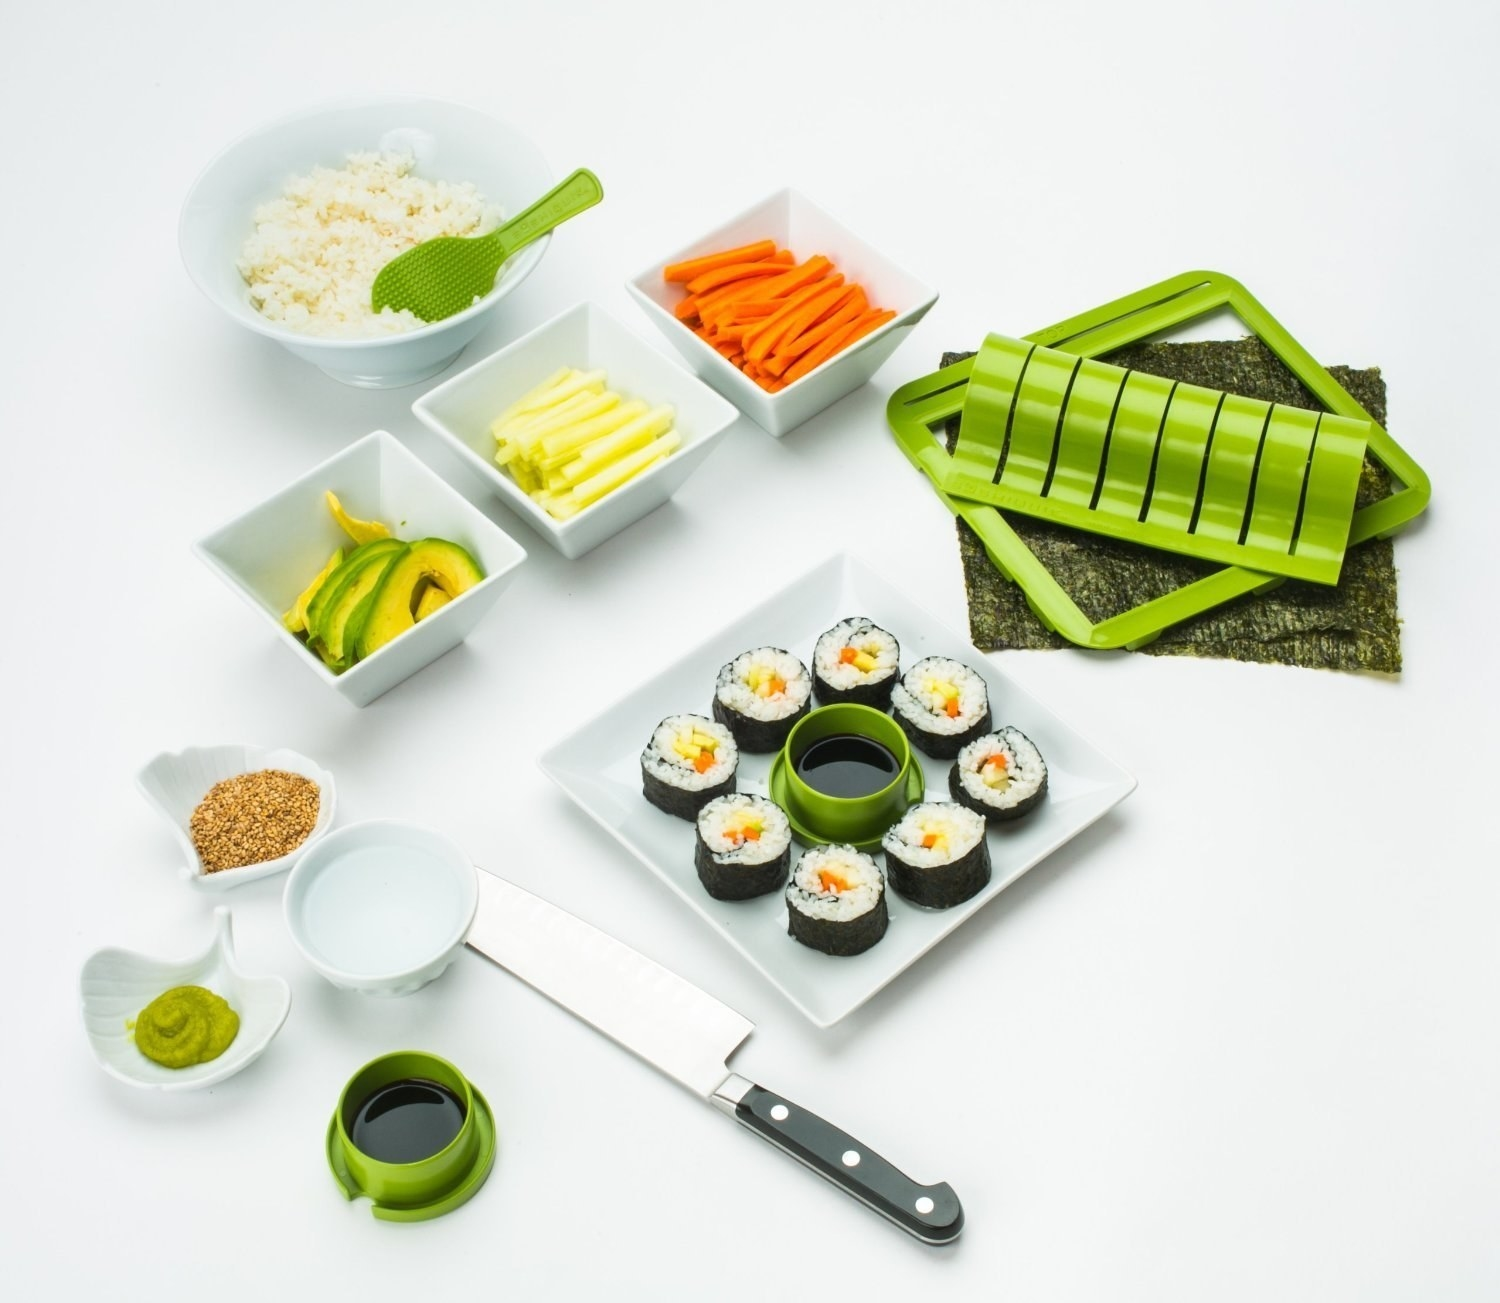 The kit, staged with sushi and ingredients